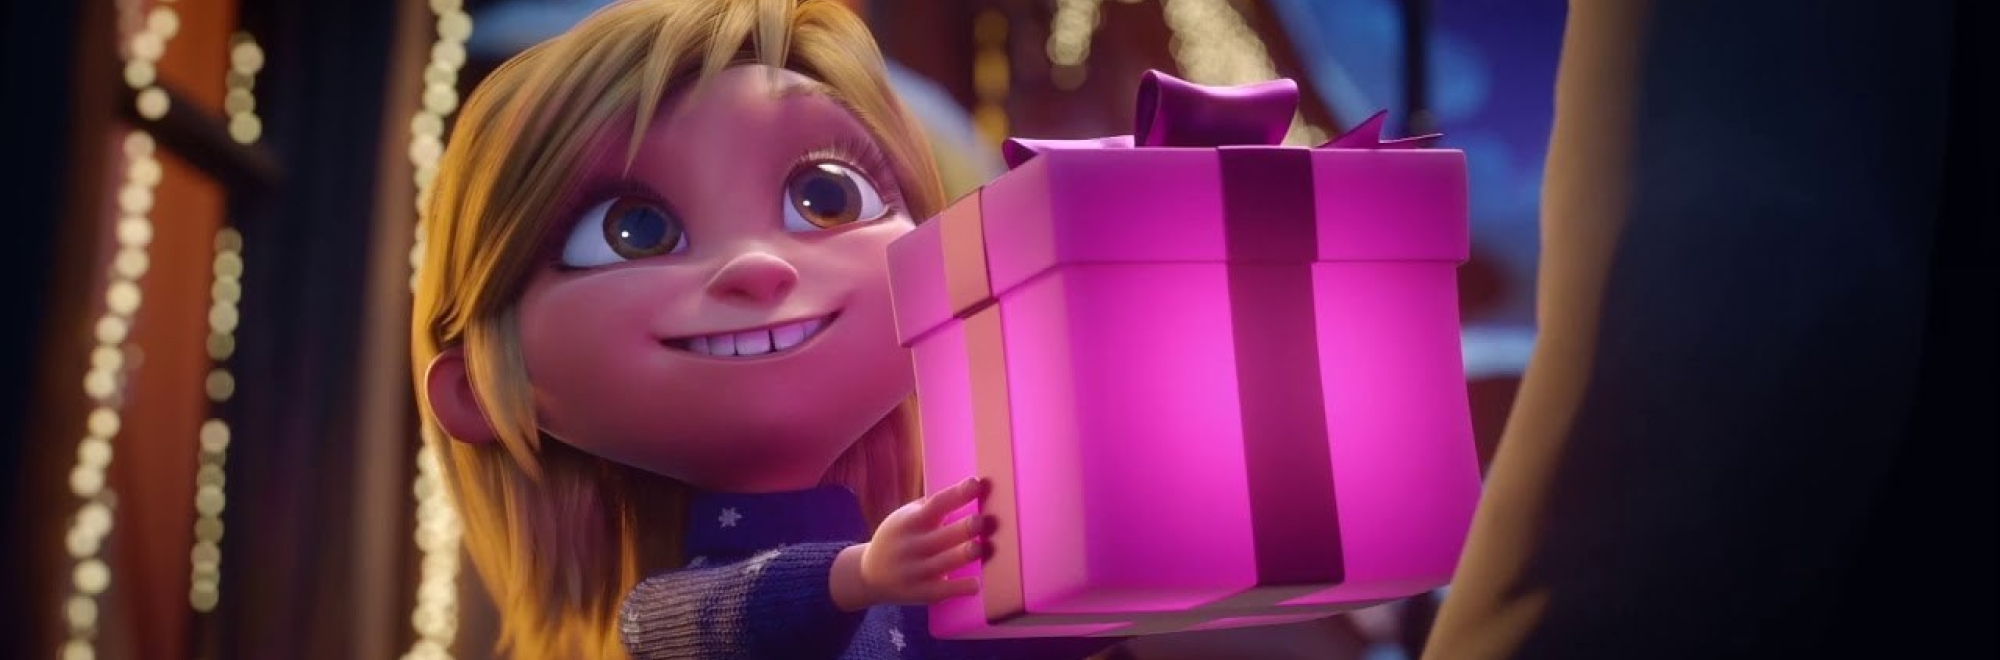 Very.co.uk celebrates community values in new Christmas campaign from St. Luke's